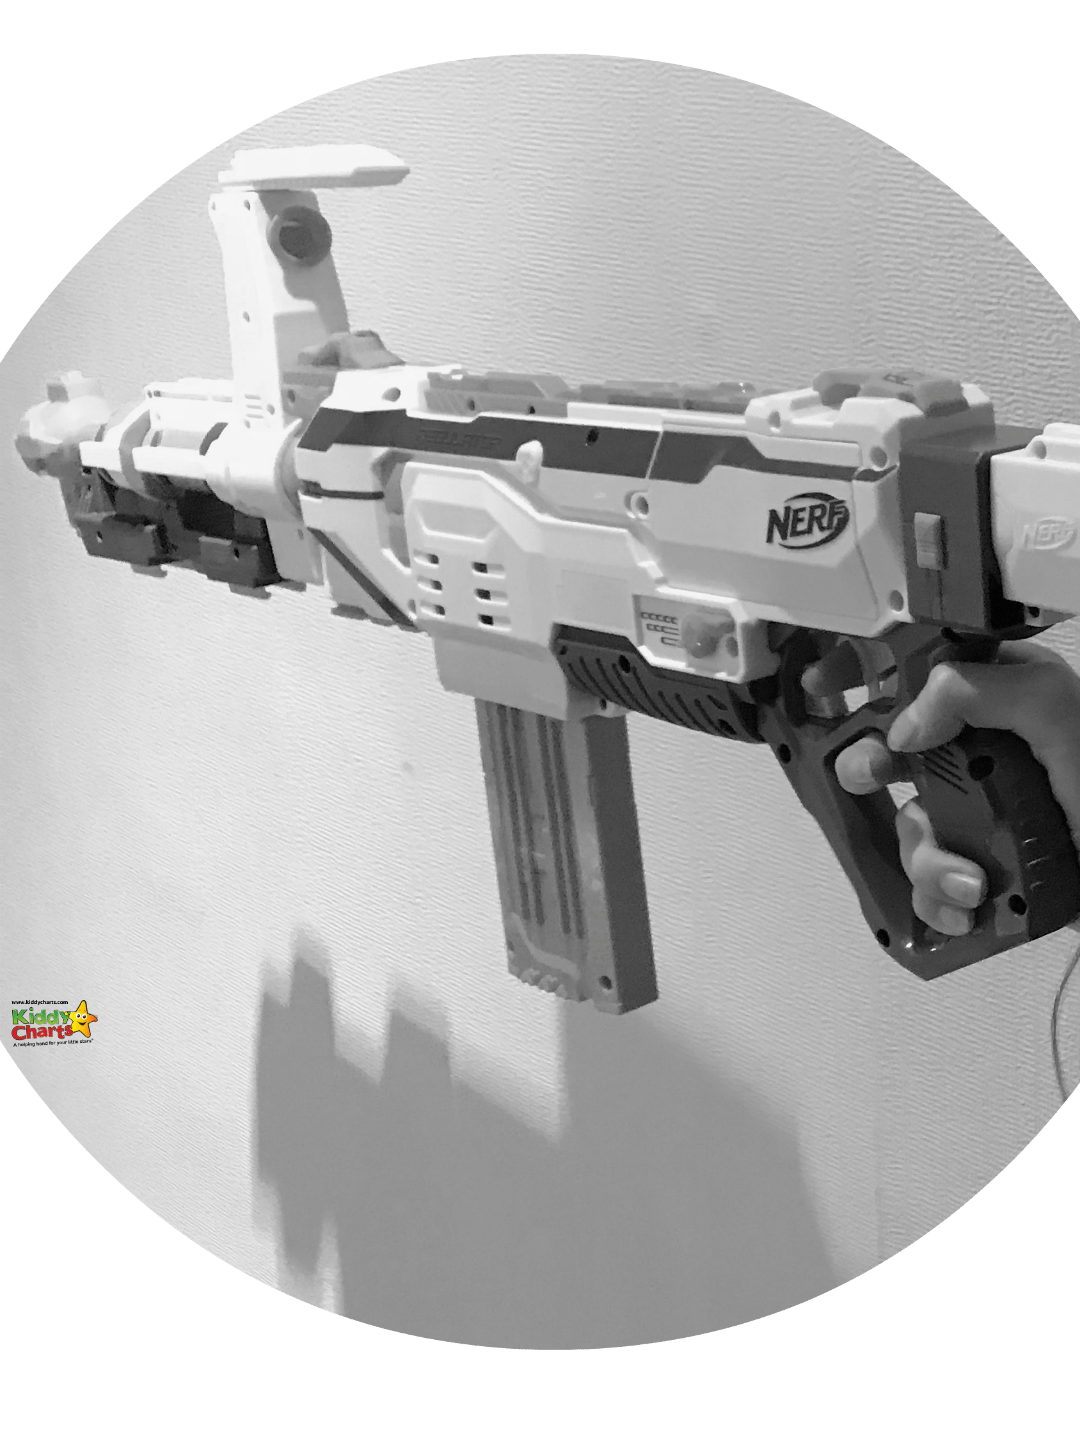 We loved having a play with our Nerf Gun even though we haven't really had too much to do with them previously - this was a great way to really get stuck into target practise with.